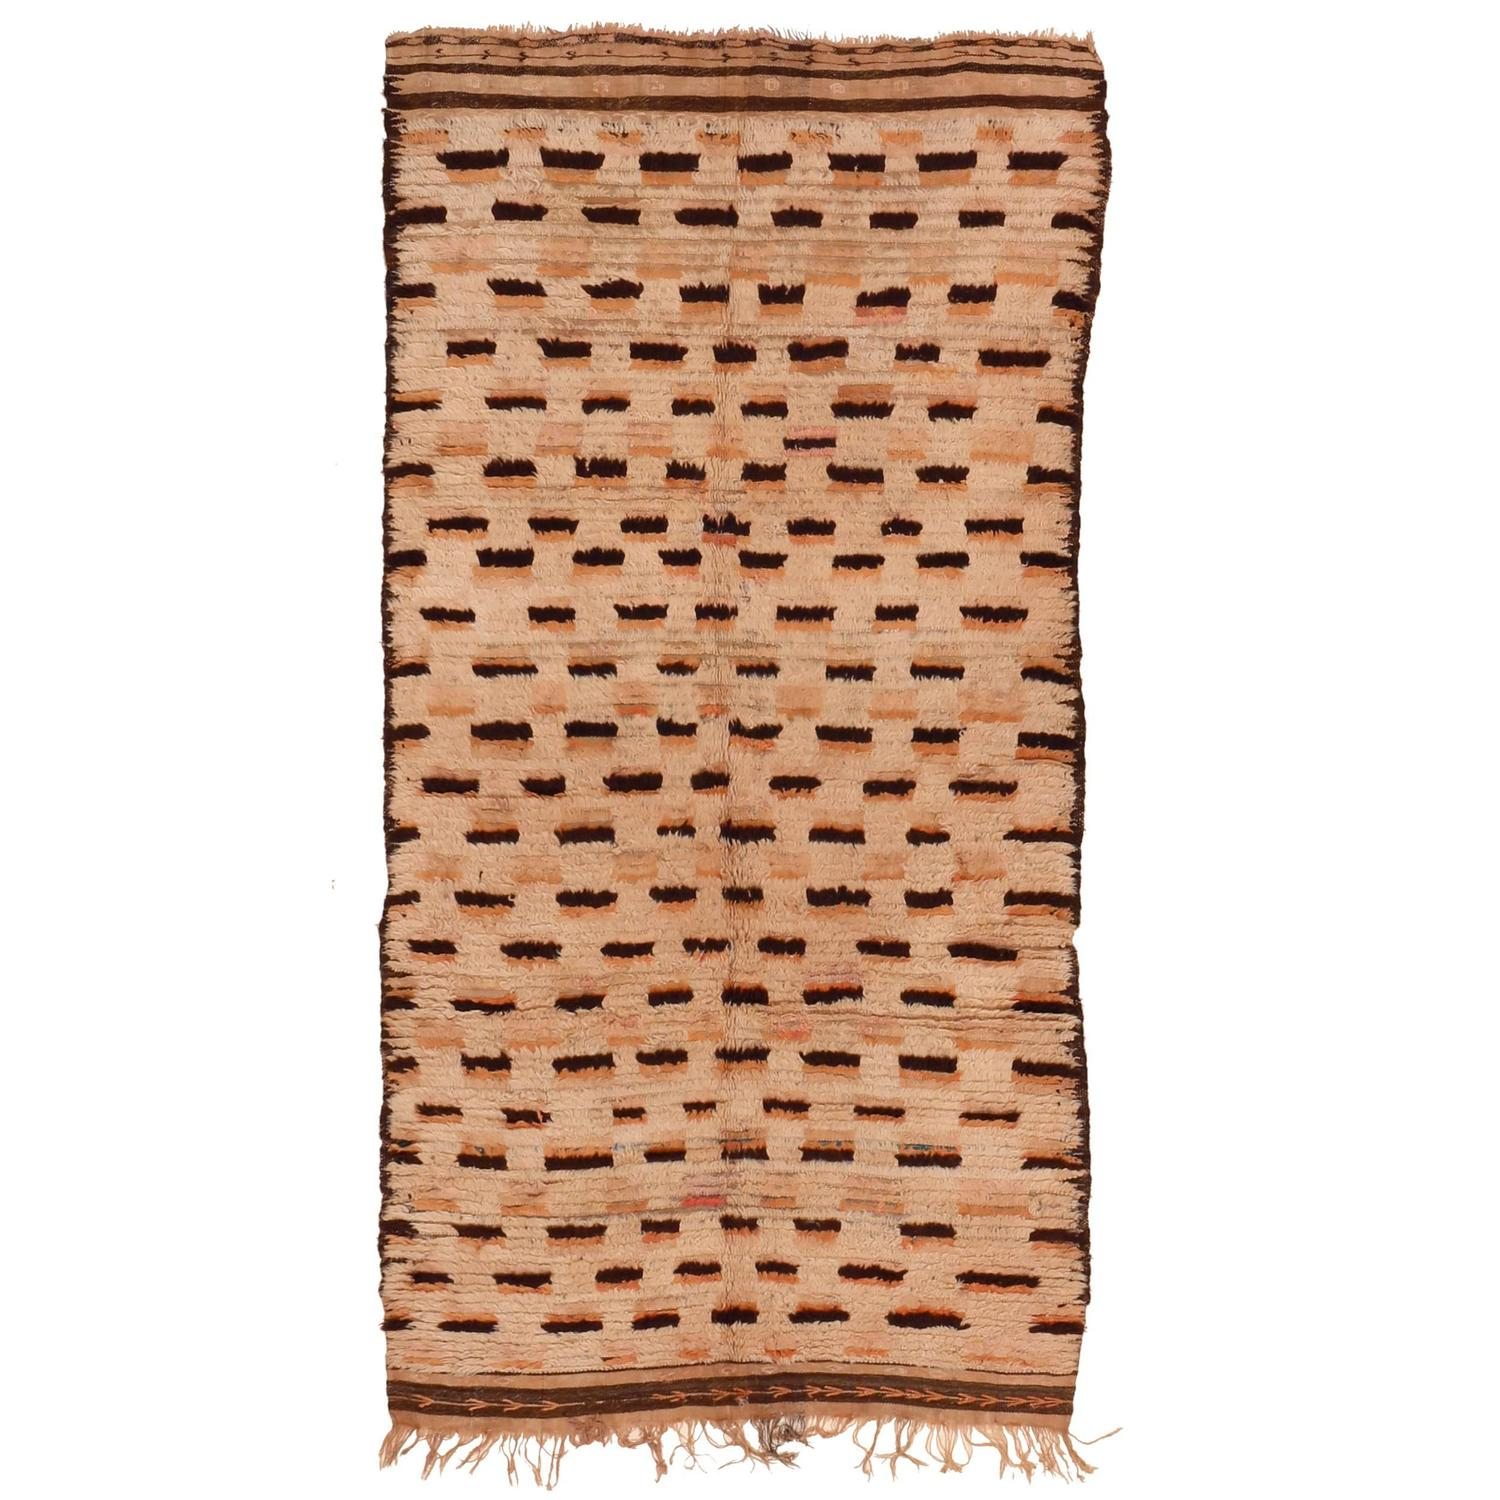 Moroccan Boucherouite Rug For Sale At 1stdibs: Vintage Azilal Berber Rug For Sale At 1stdibs